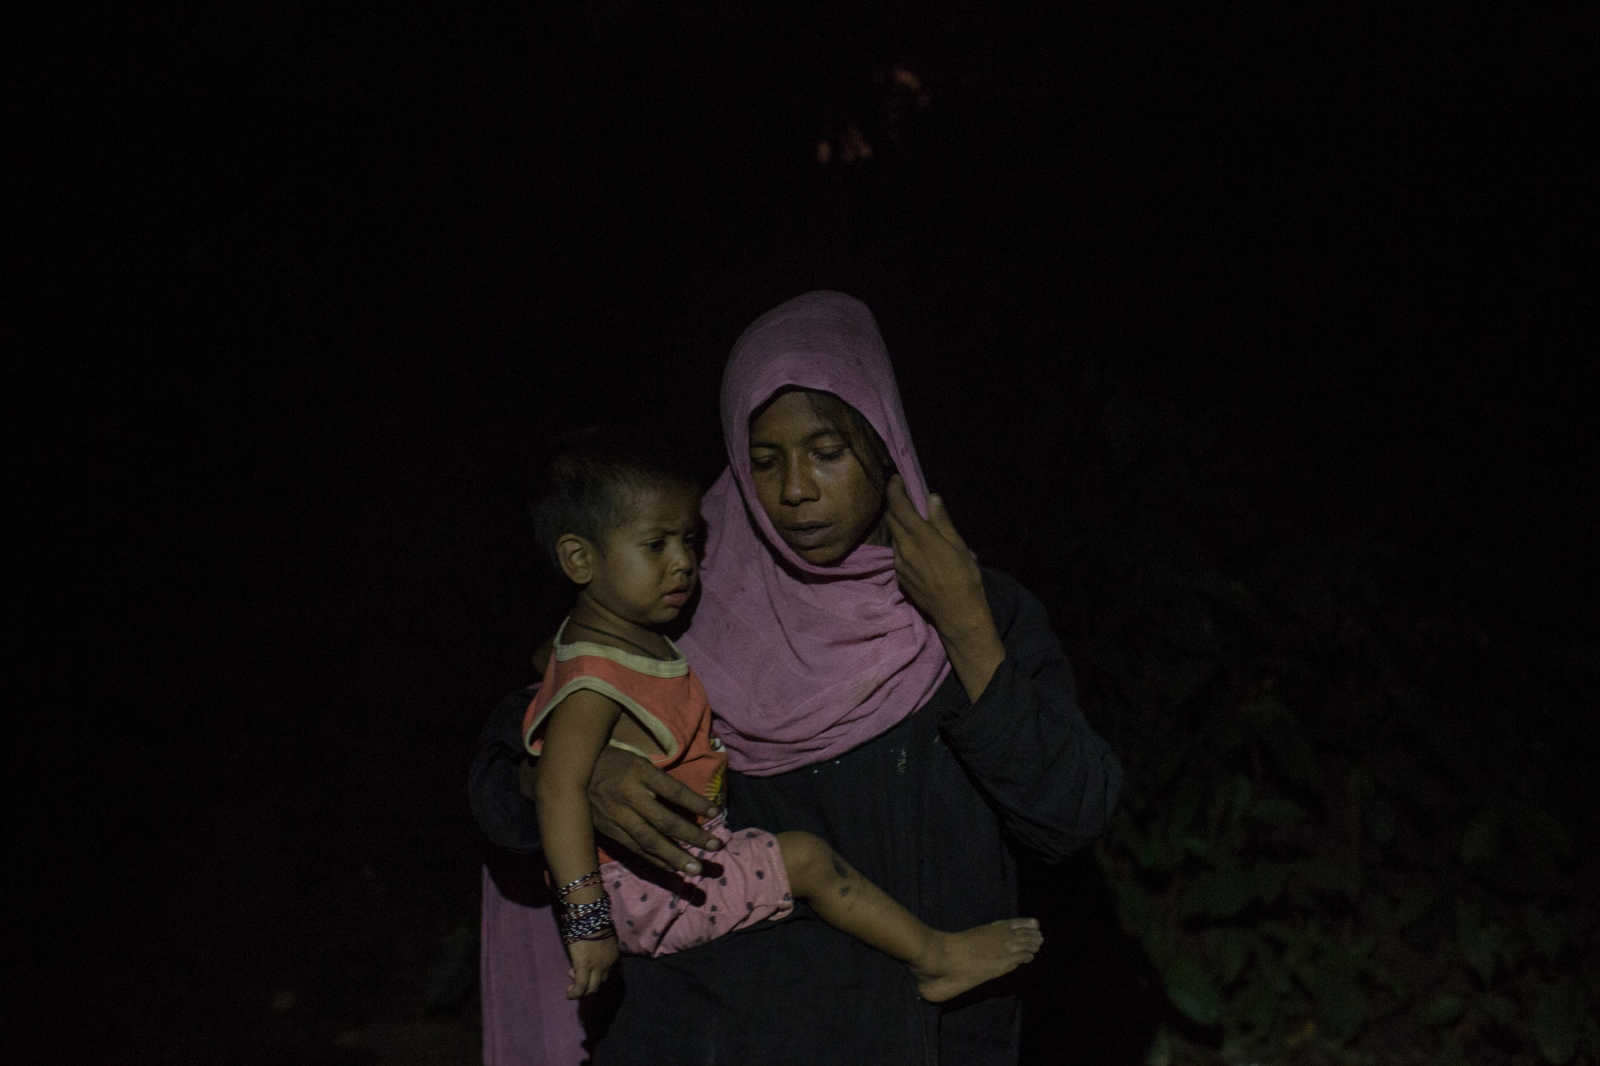 Rogina Begum, 25, waits by the side of the road for food and cash distributions near the Balukhali refugee camp, in Bangladesh on Friday, September 22, 2017. Rogina was widowed two years ago when her husband, a fisherman, died at sea. She was forced to flee when the military began their assault on her village.